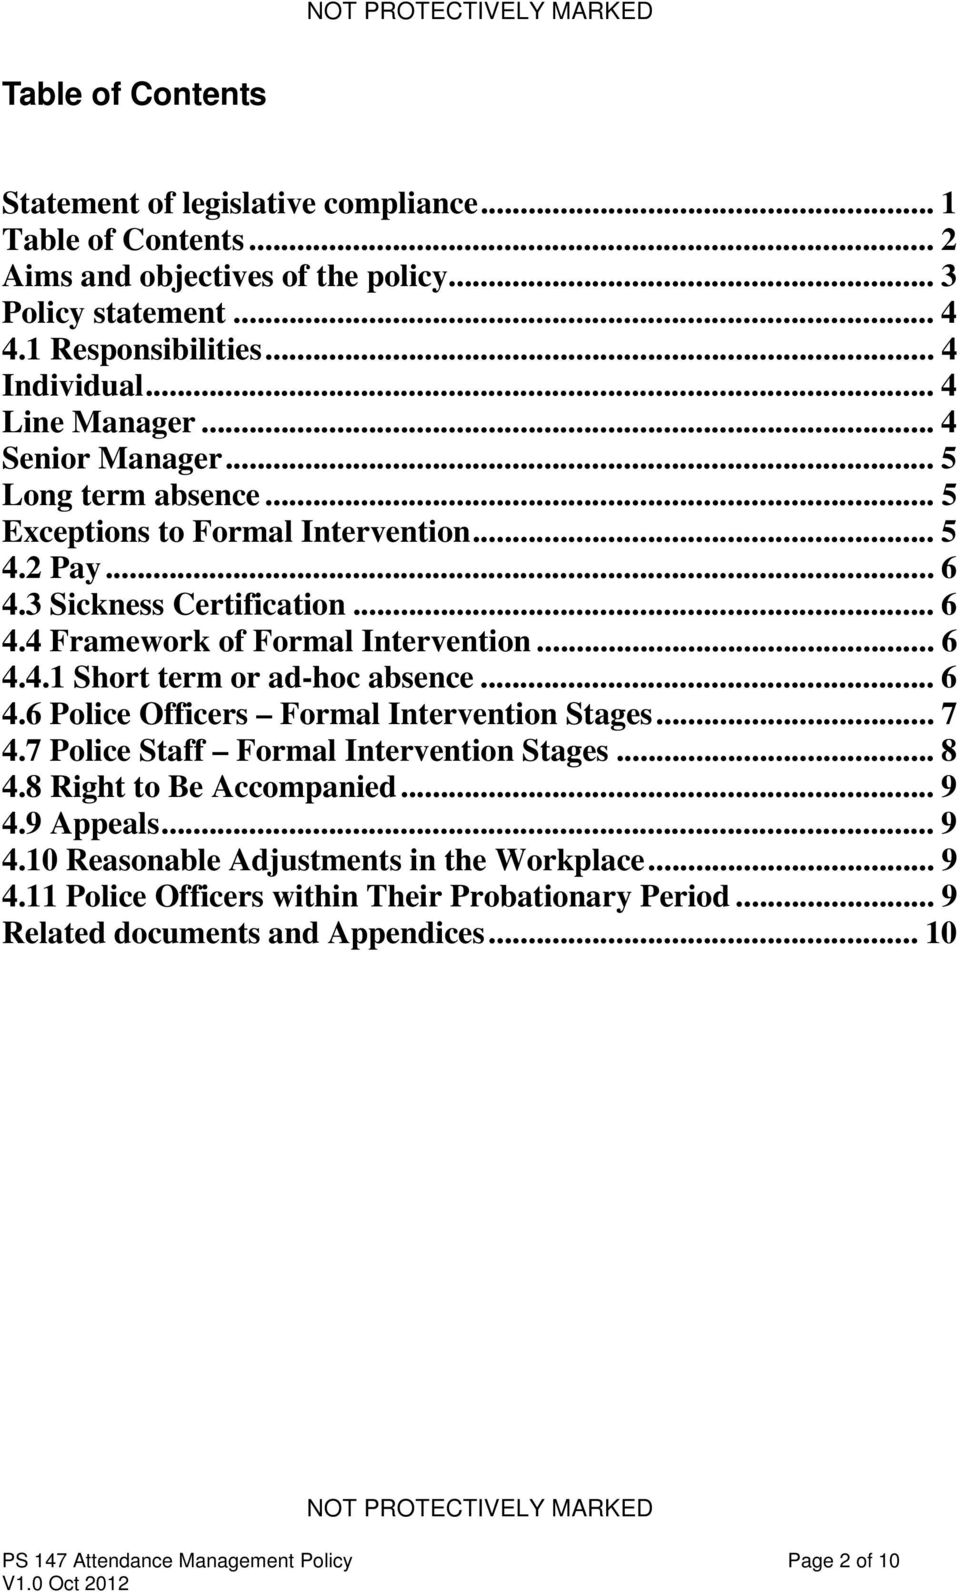 .. 6 4.4.1 Short term or ad-hoc absence... 6 4.6 Police Officers Formal Intervention Stages... 7 4.7 Police Staff Formal Intervention Stages... 8 4.8 Right to Be Accompanied... 9 4.